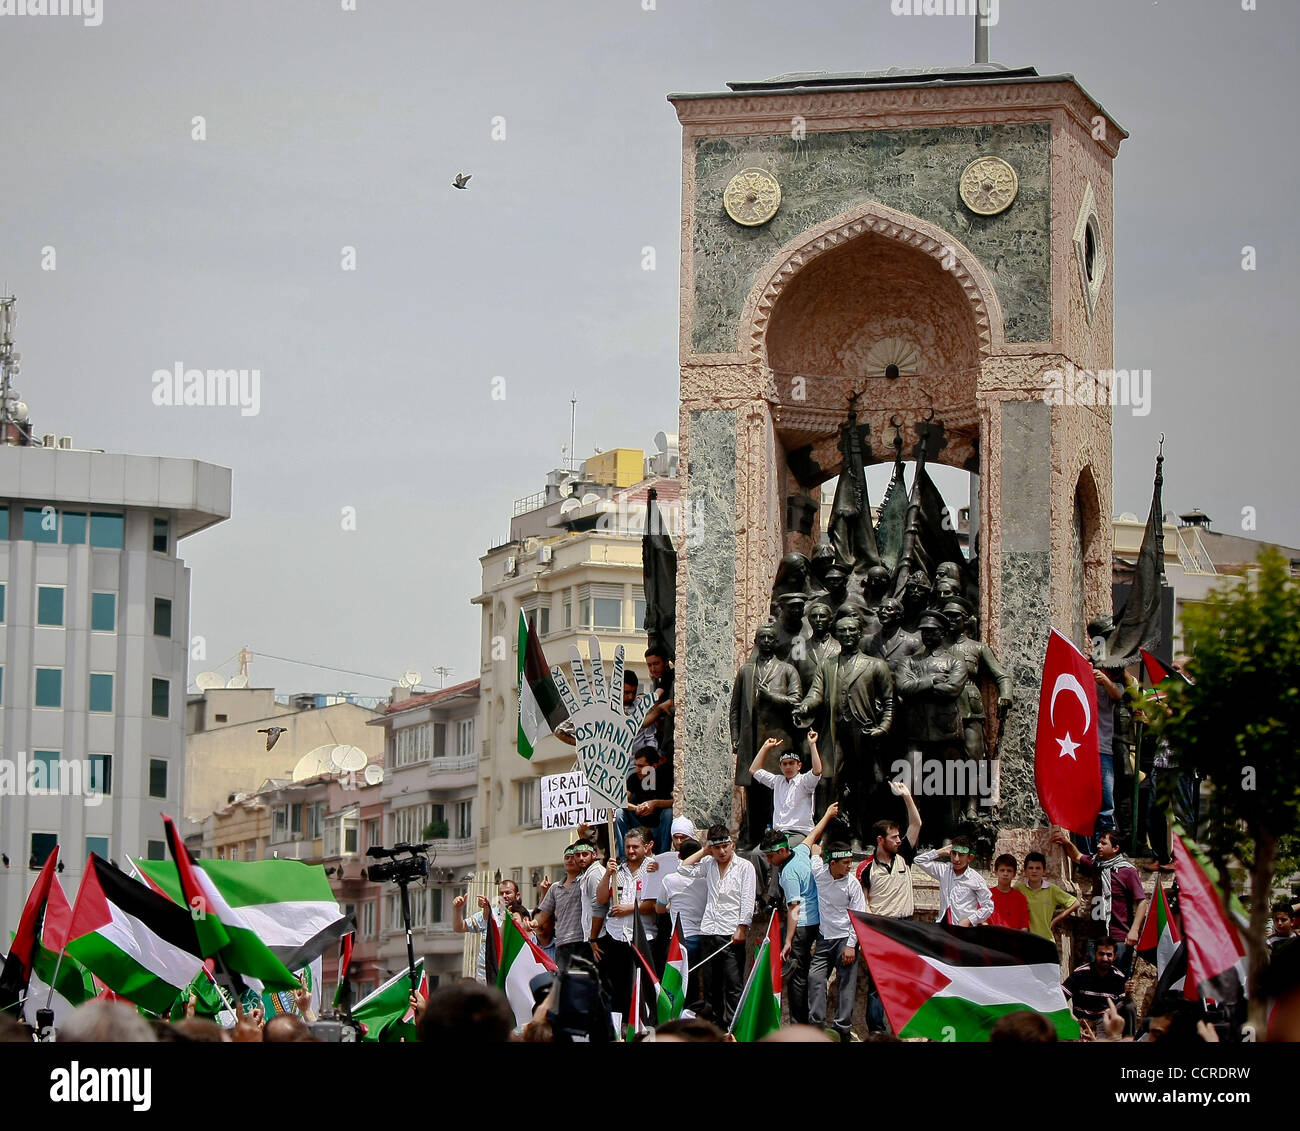 Turkish Islamic protesters shout slogans during a demonstration against Israel's attack on a Turkish ship, part - Stock Image